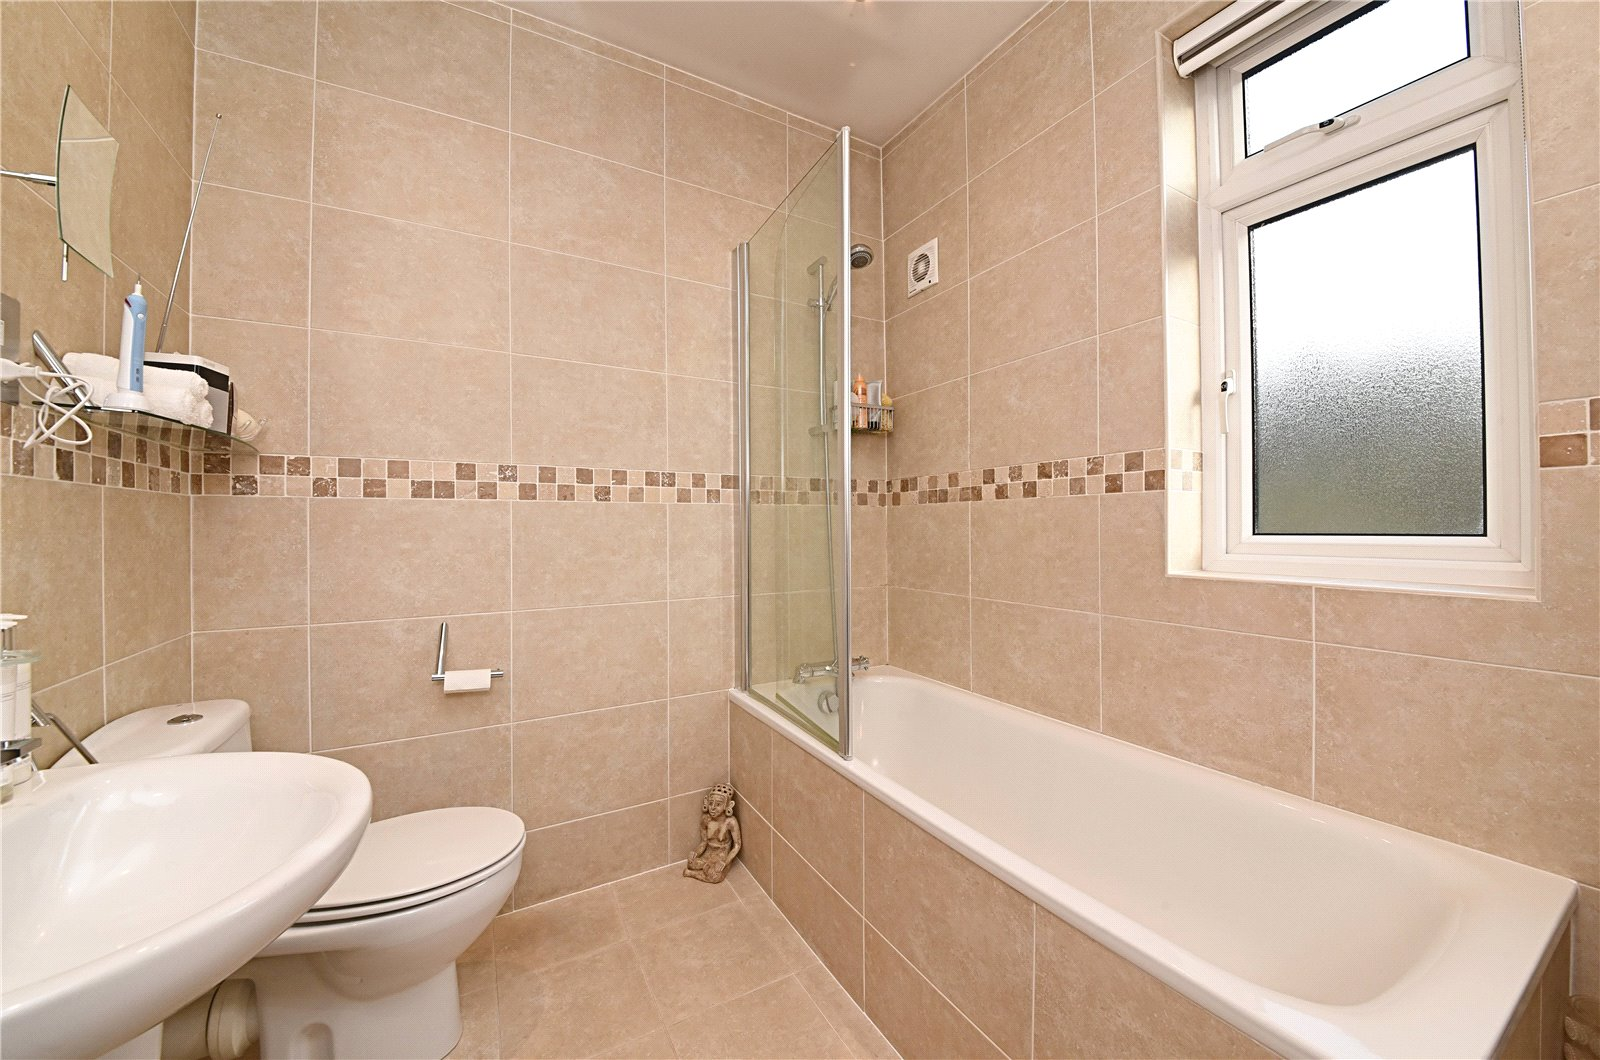 4 bed house for sale in Hendon, NW4 1LJ 5